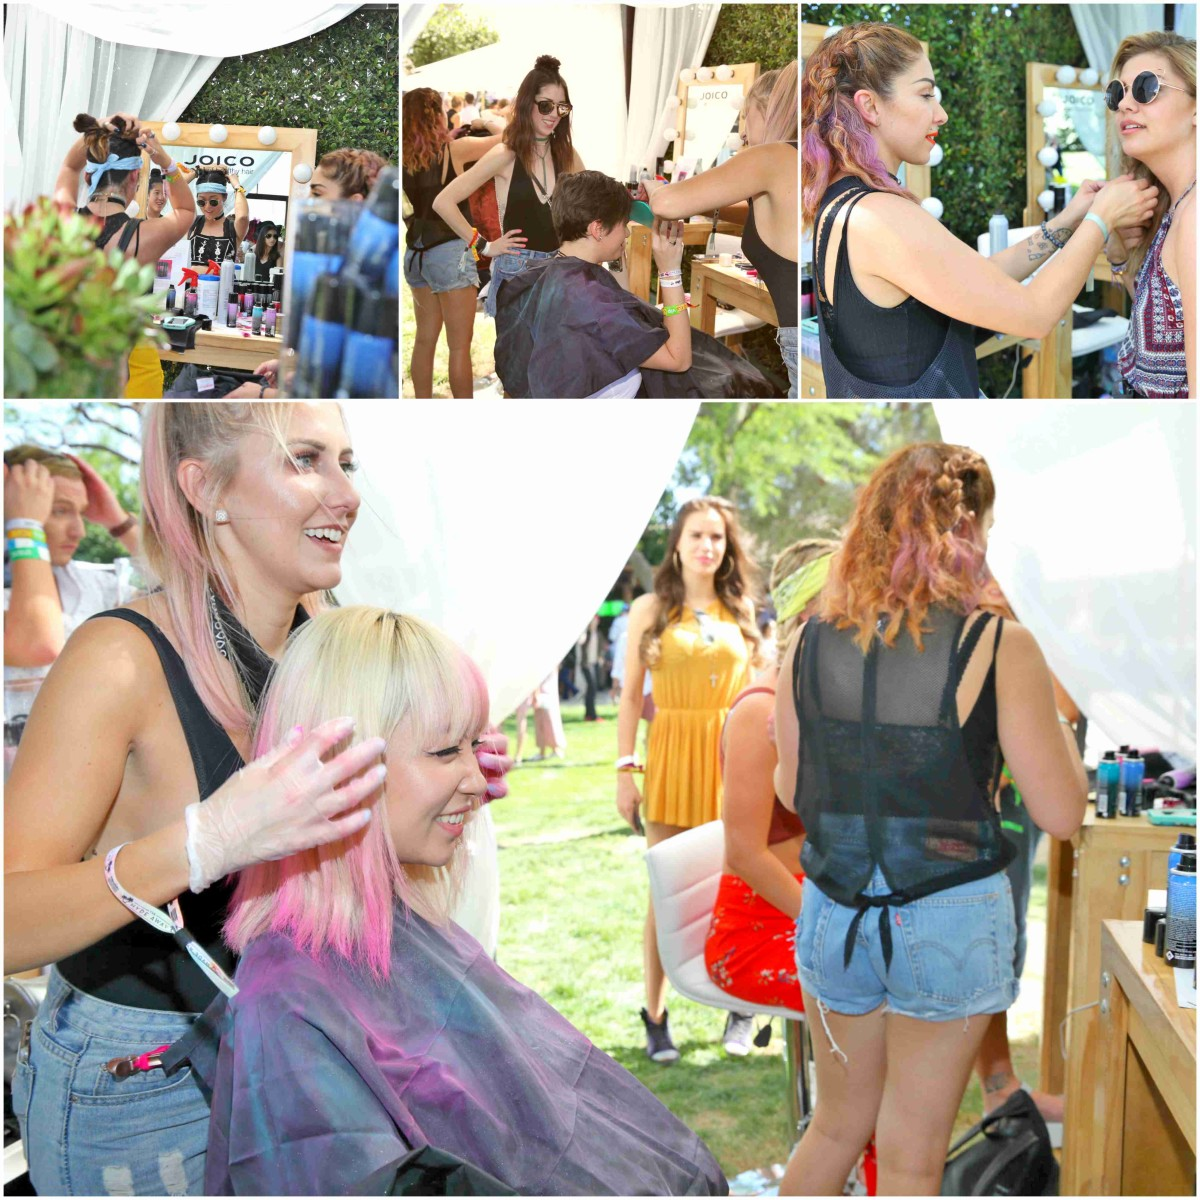 pretty in pink at the Joico Festival Hair tent, JinJoo from DNCE